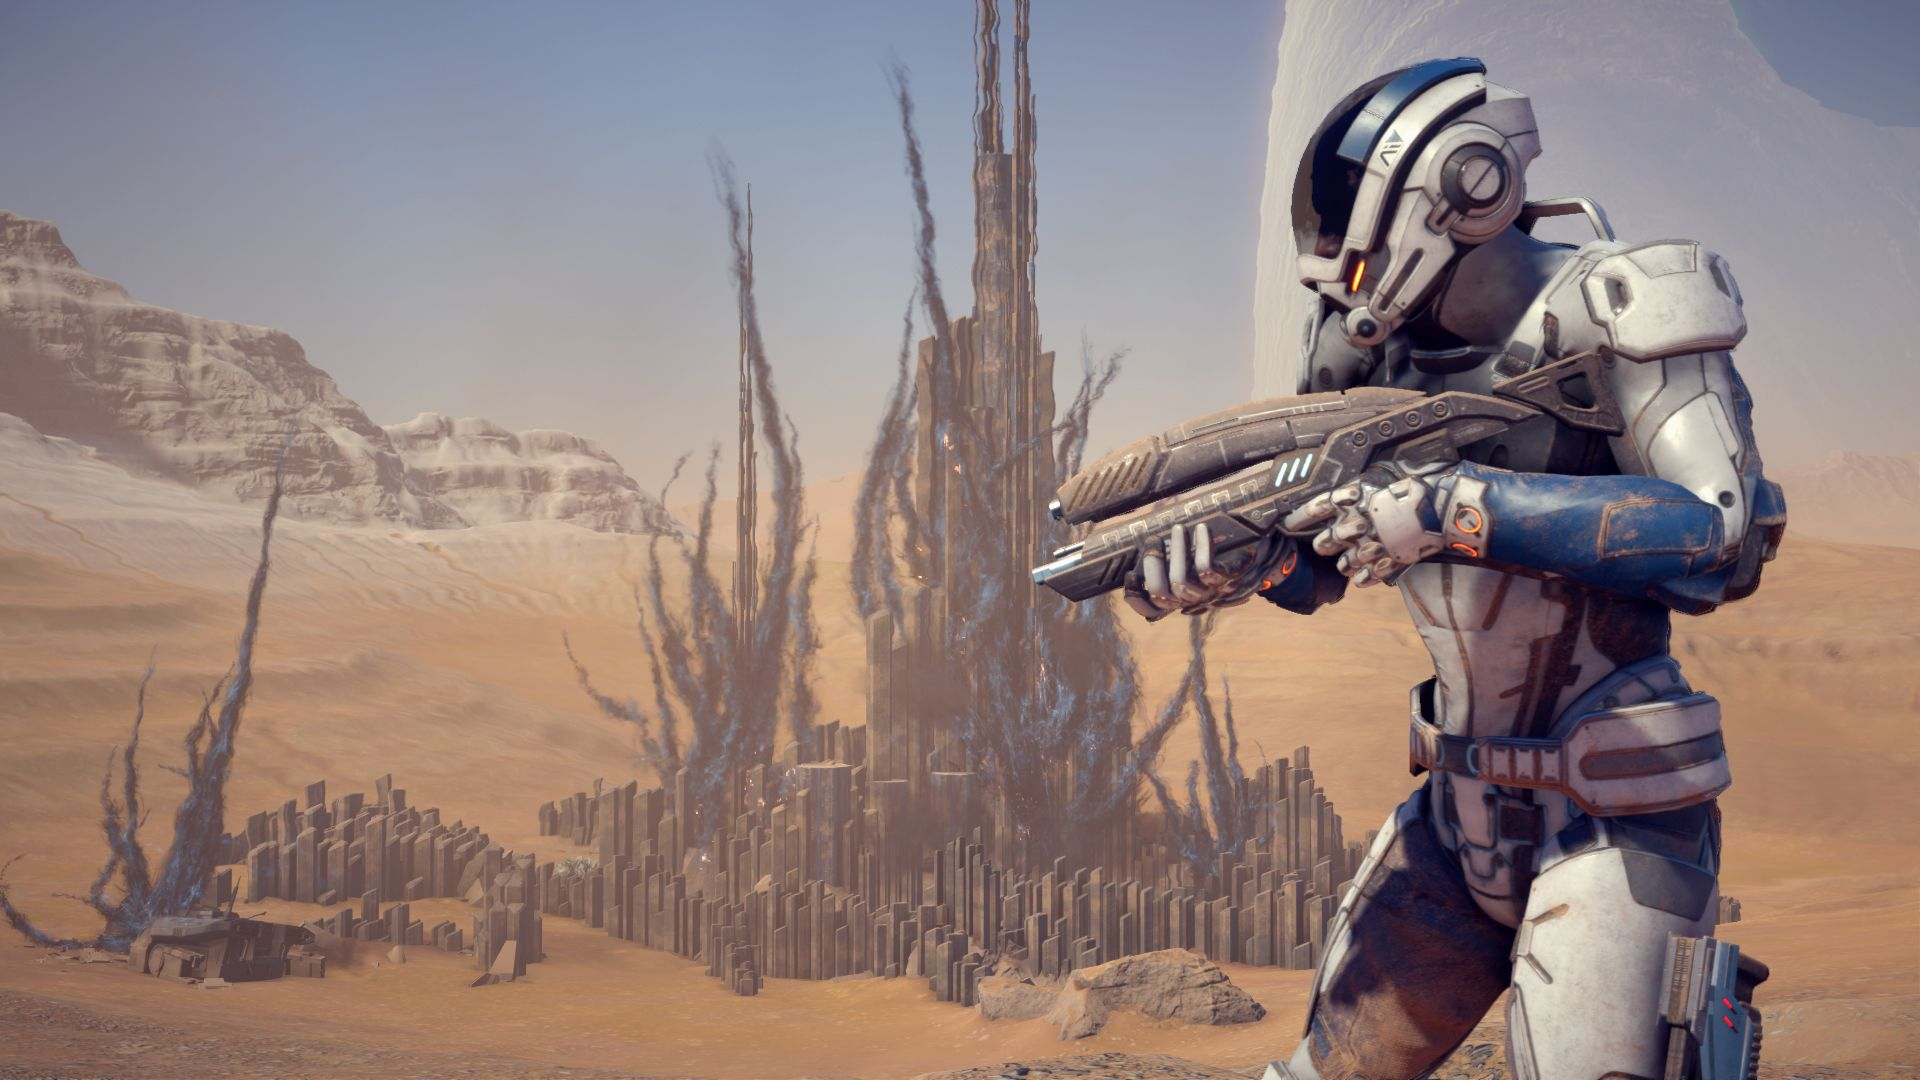 download mass effect andromeda digital deluxe edition for ps4 iso complex repack z10yded userscloud pc iso fire drive filecloud usersfiles mirrorace